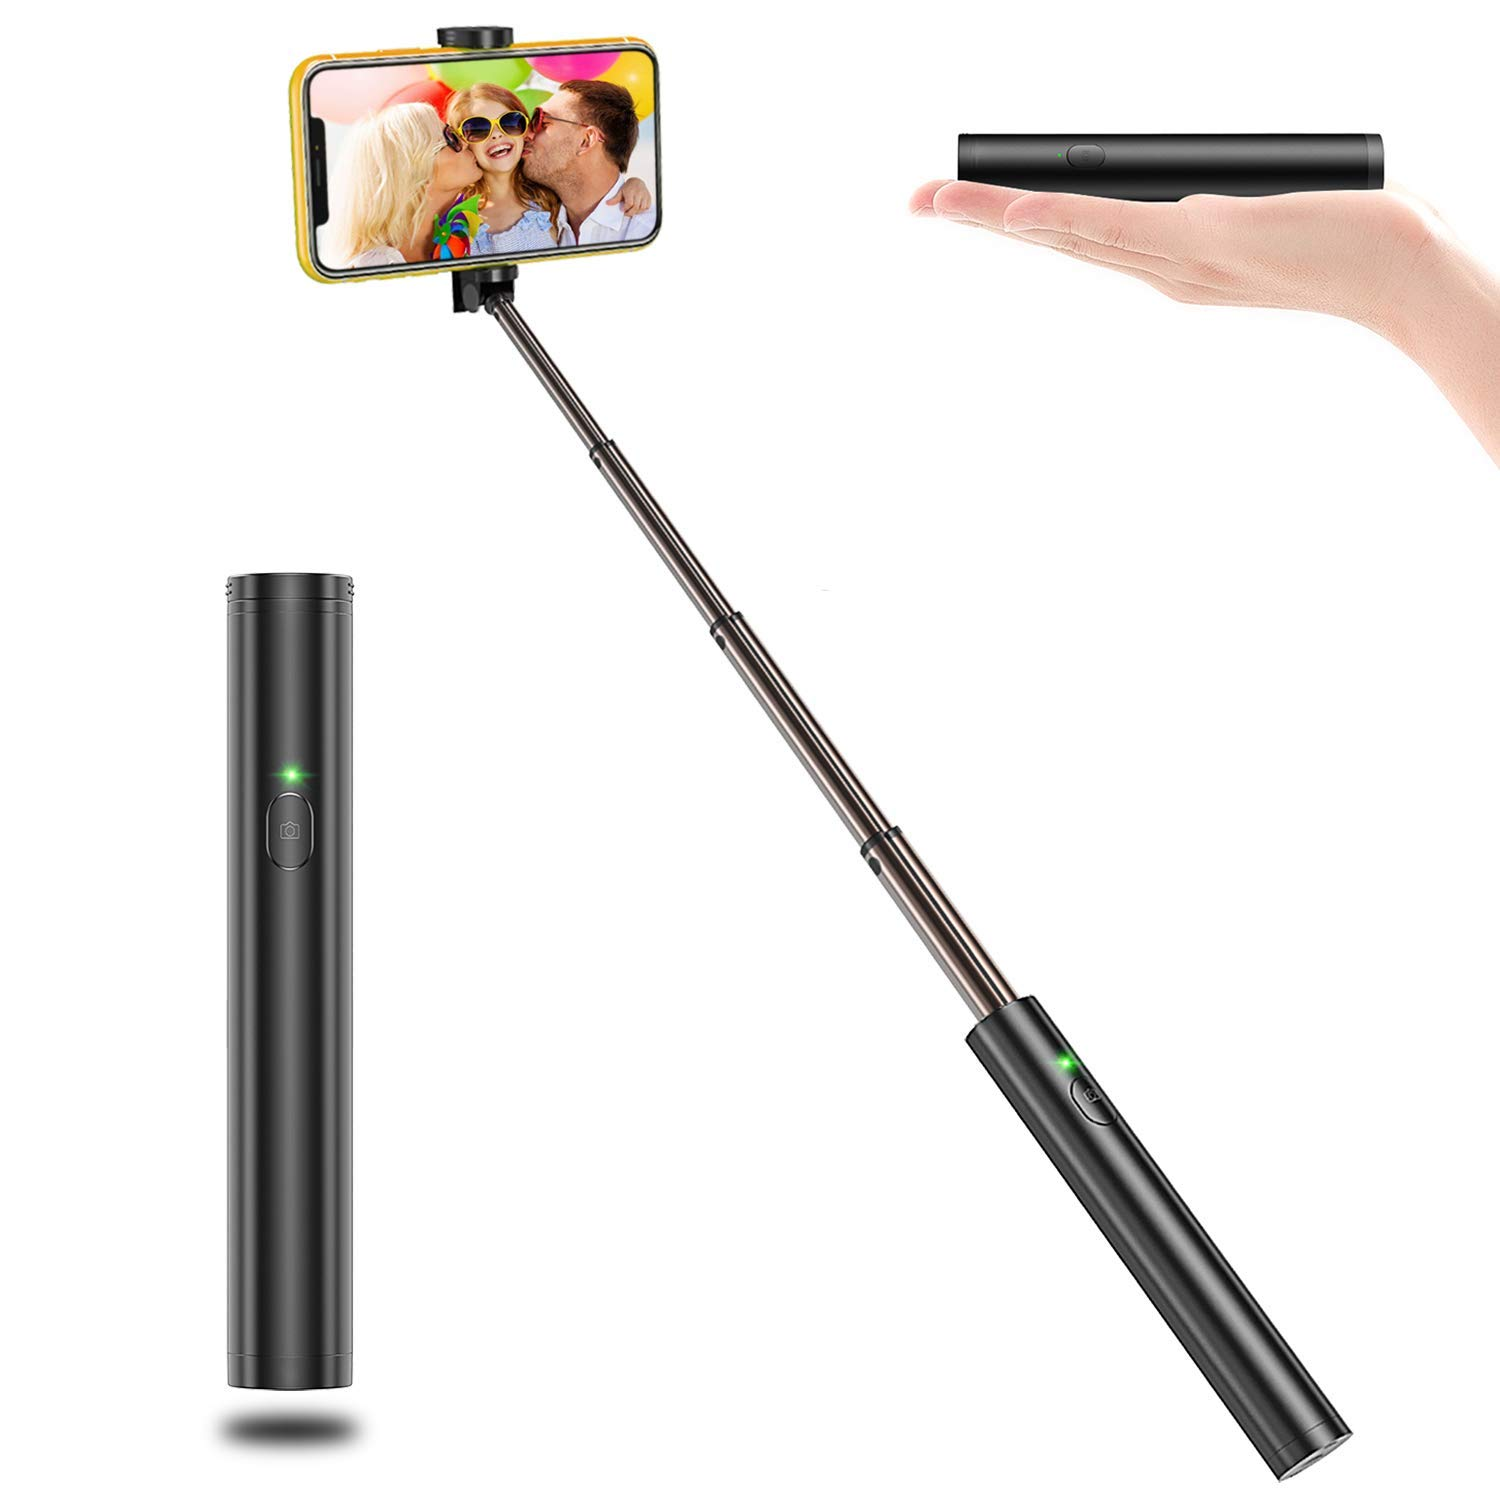 Vproof Selfie Stick Bluetooth, Lightweight Aluminum All in One Extendable Selfie Sticks Compact Design for iPhone Xs/XS max/XR/X/8/8 Plus/7/6s/6/5, Galaxy S10/S9/S8/S7/S6/Note, More by Vproof